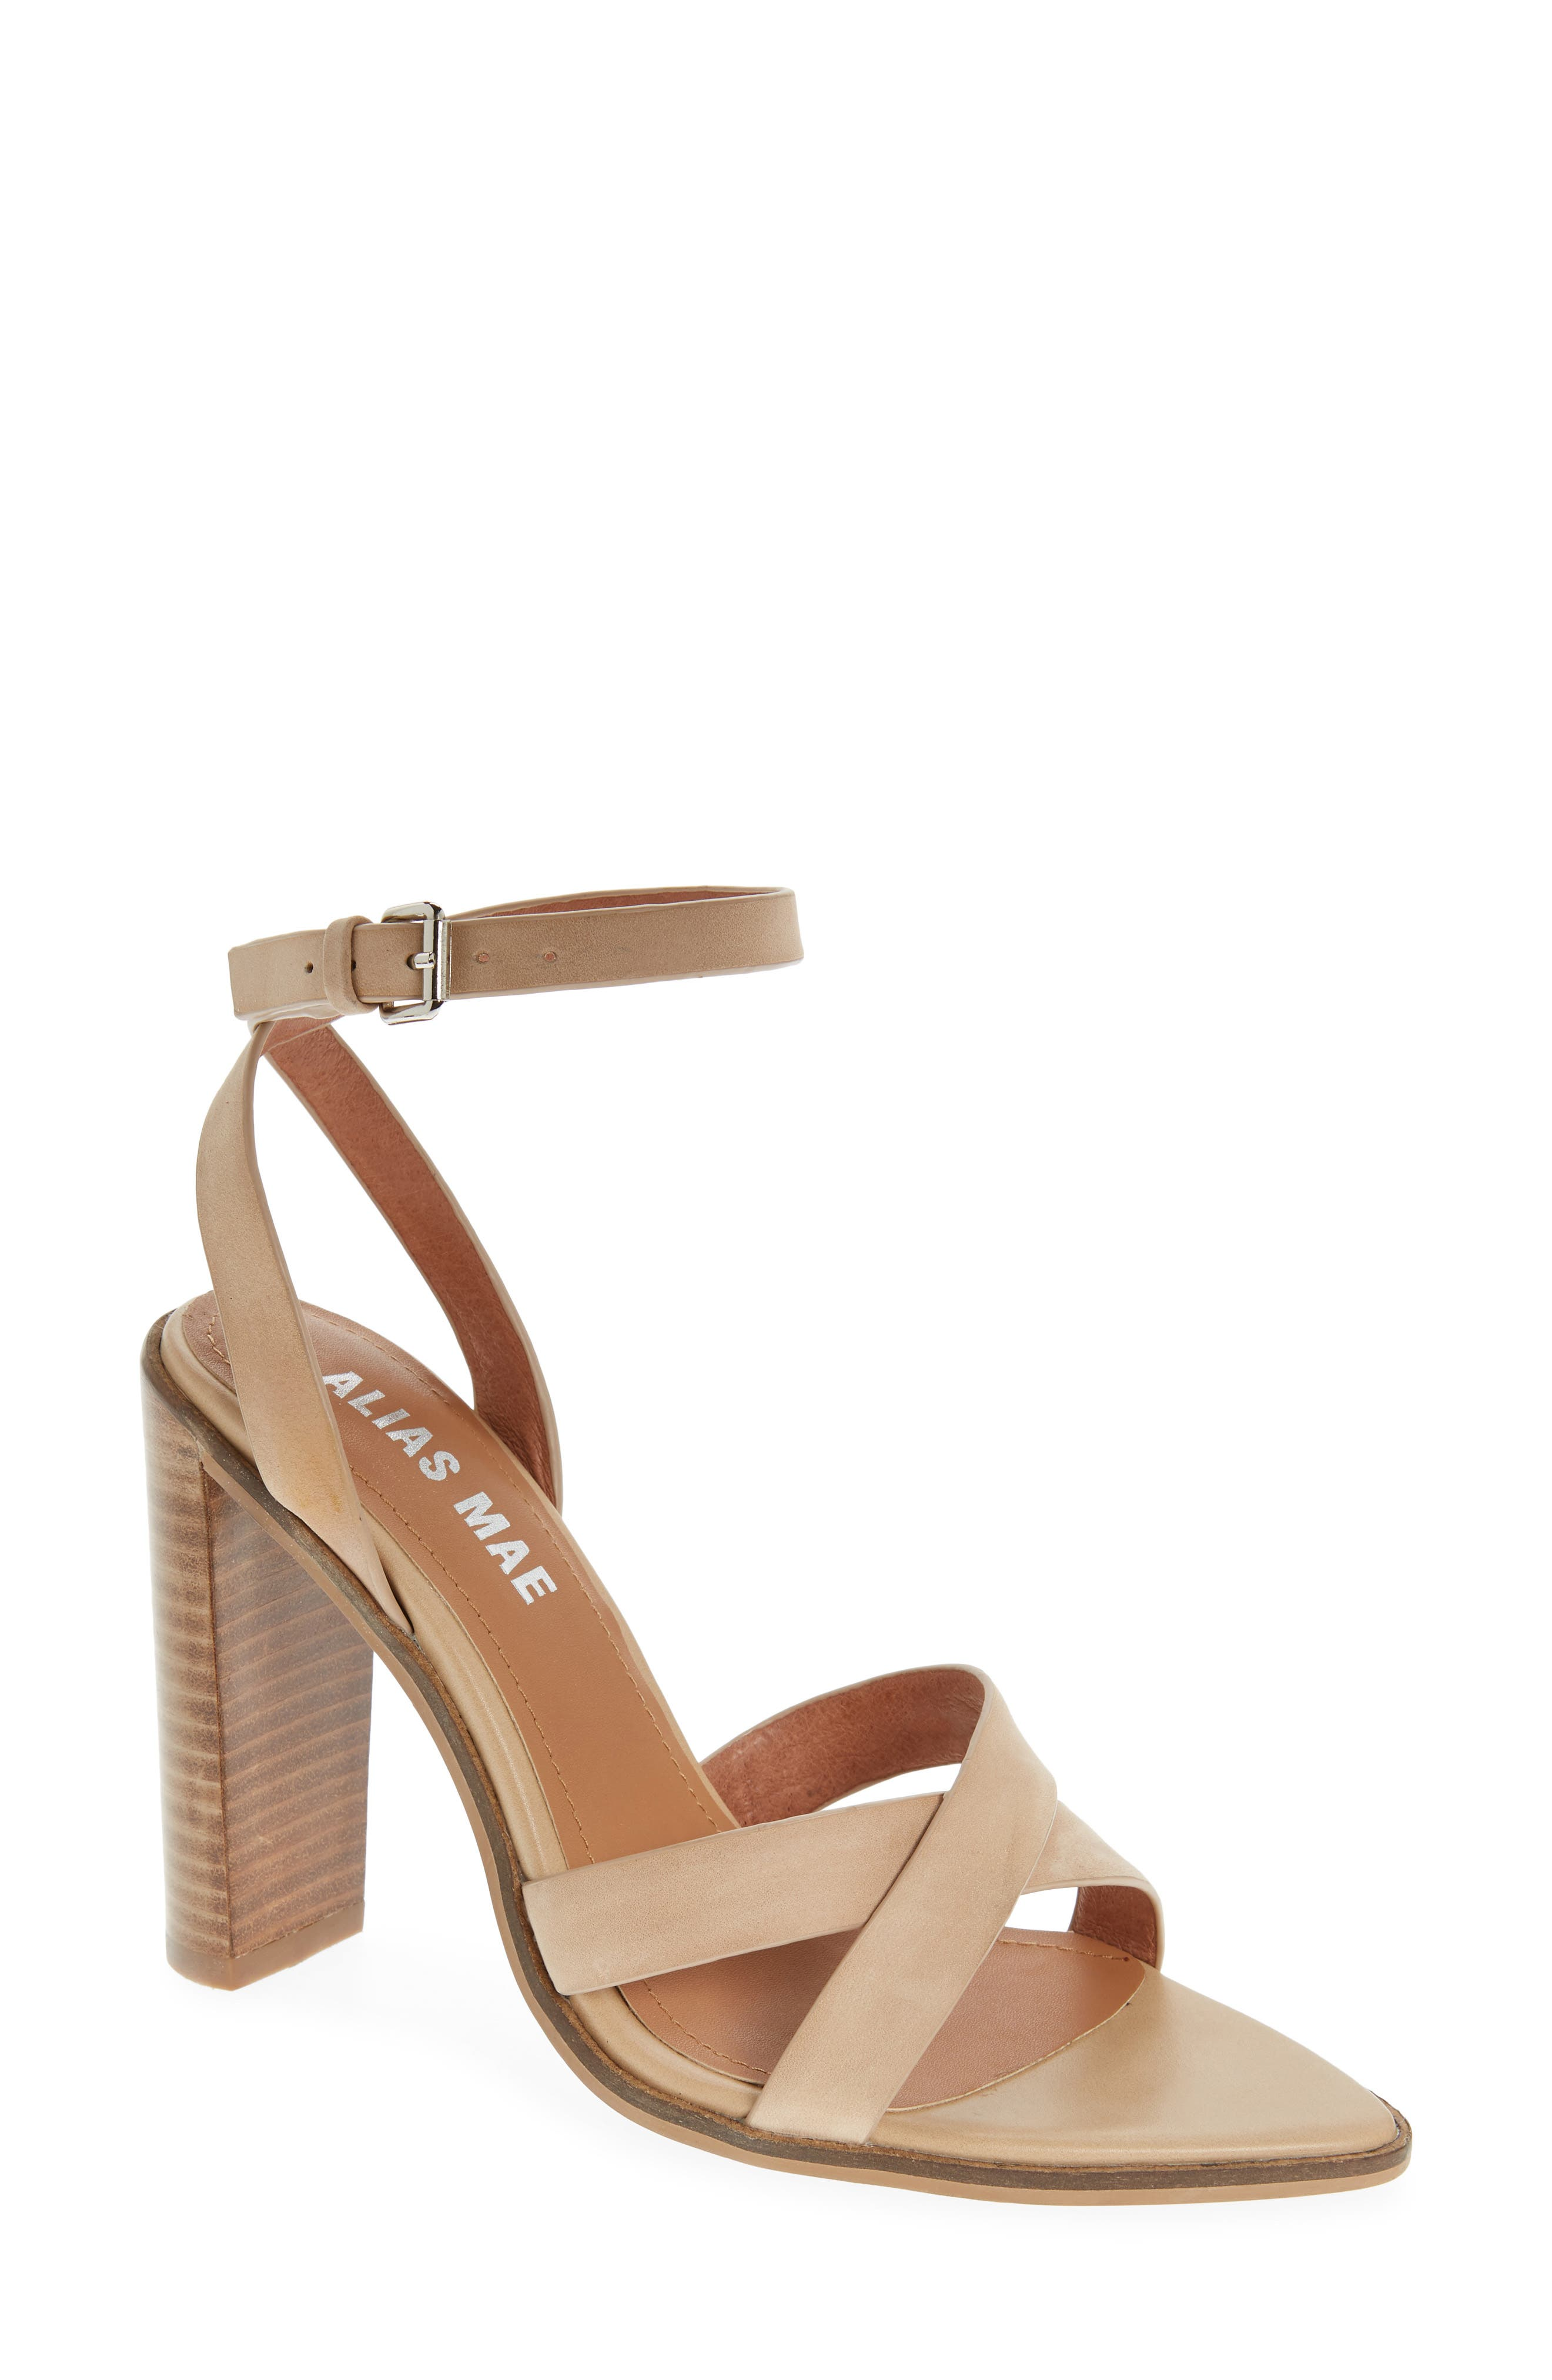 ALIAS MAE Sonny Block Heel Sandal in Natural